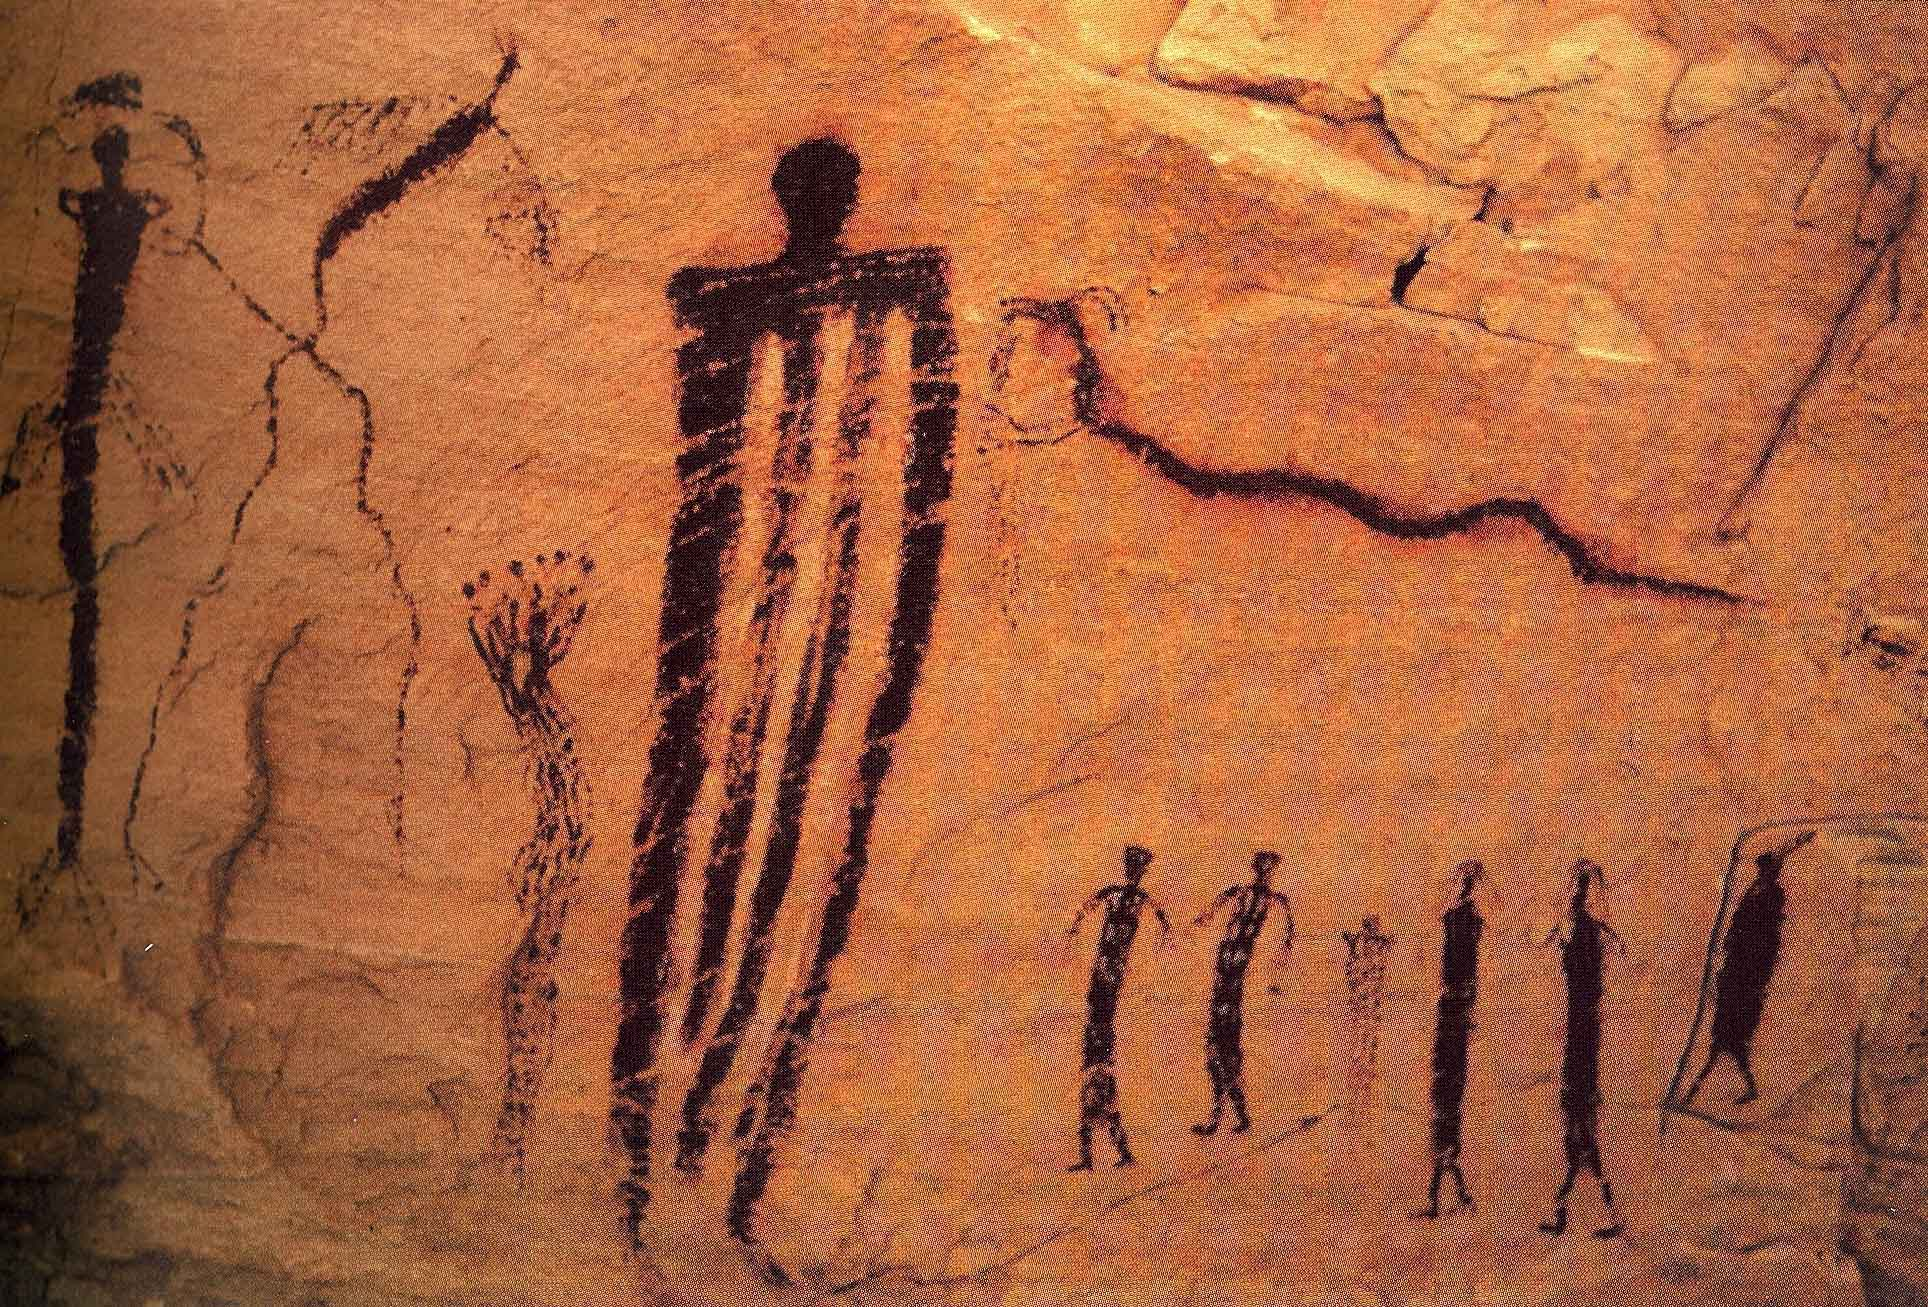 nephilim giant cave drawing.jpg